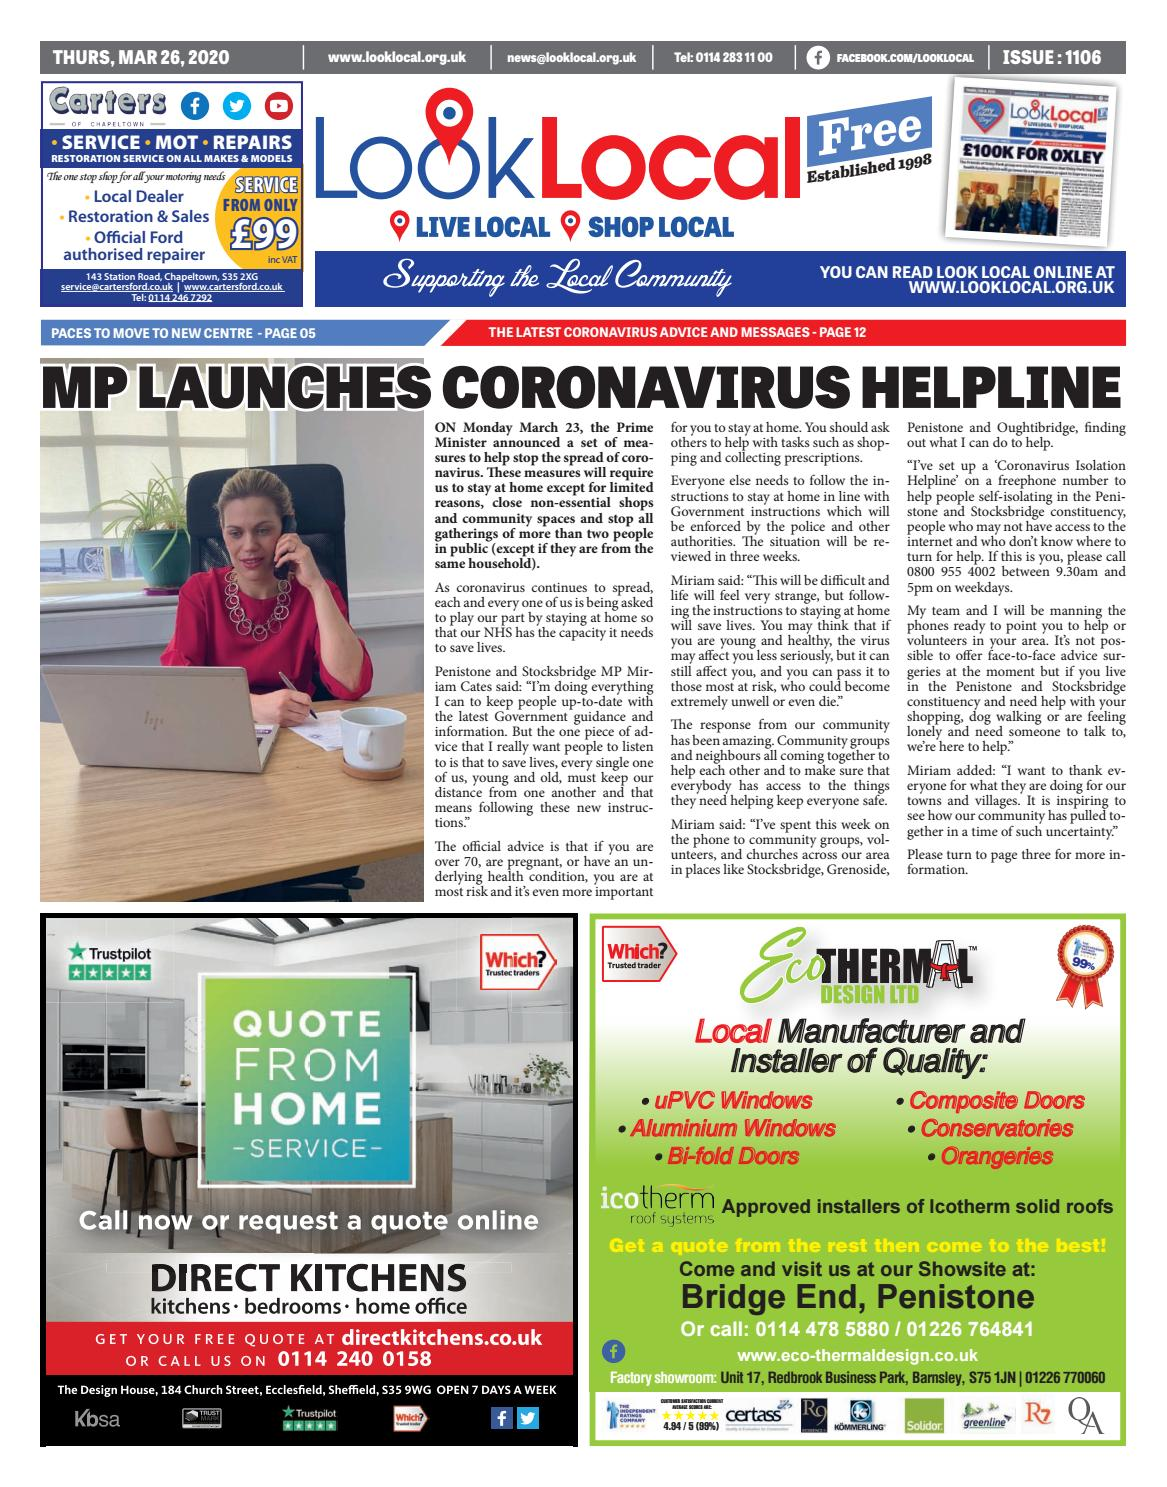 Issue 1106 Thursday 26 March 2020 By Look Local Newspaper Issuu